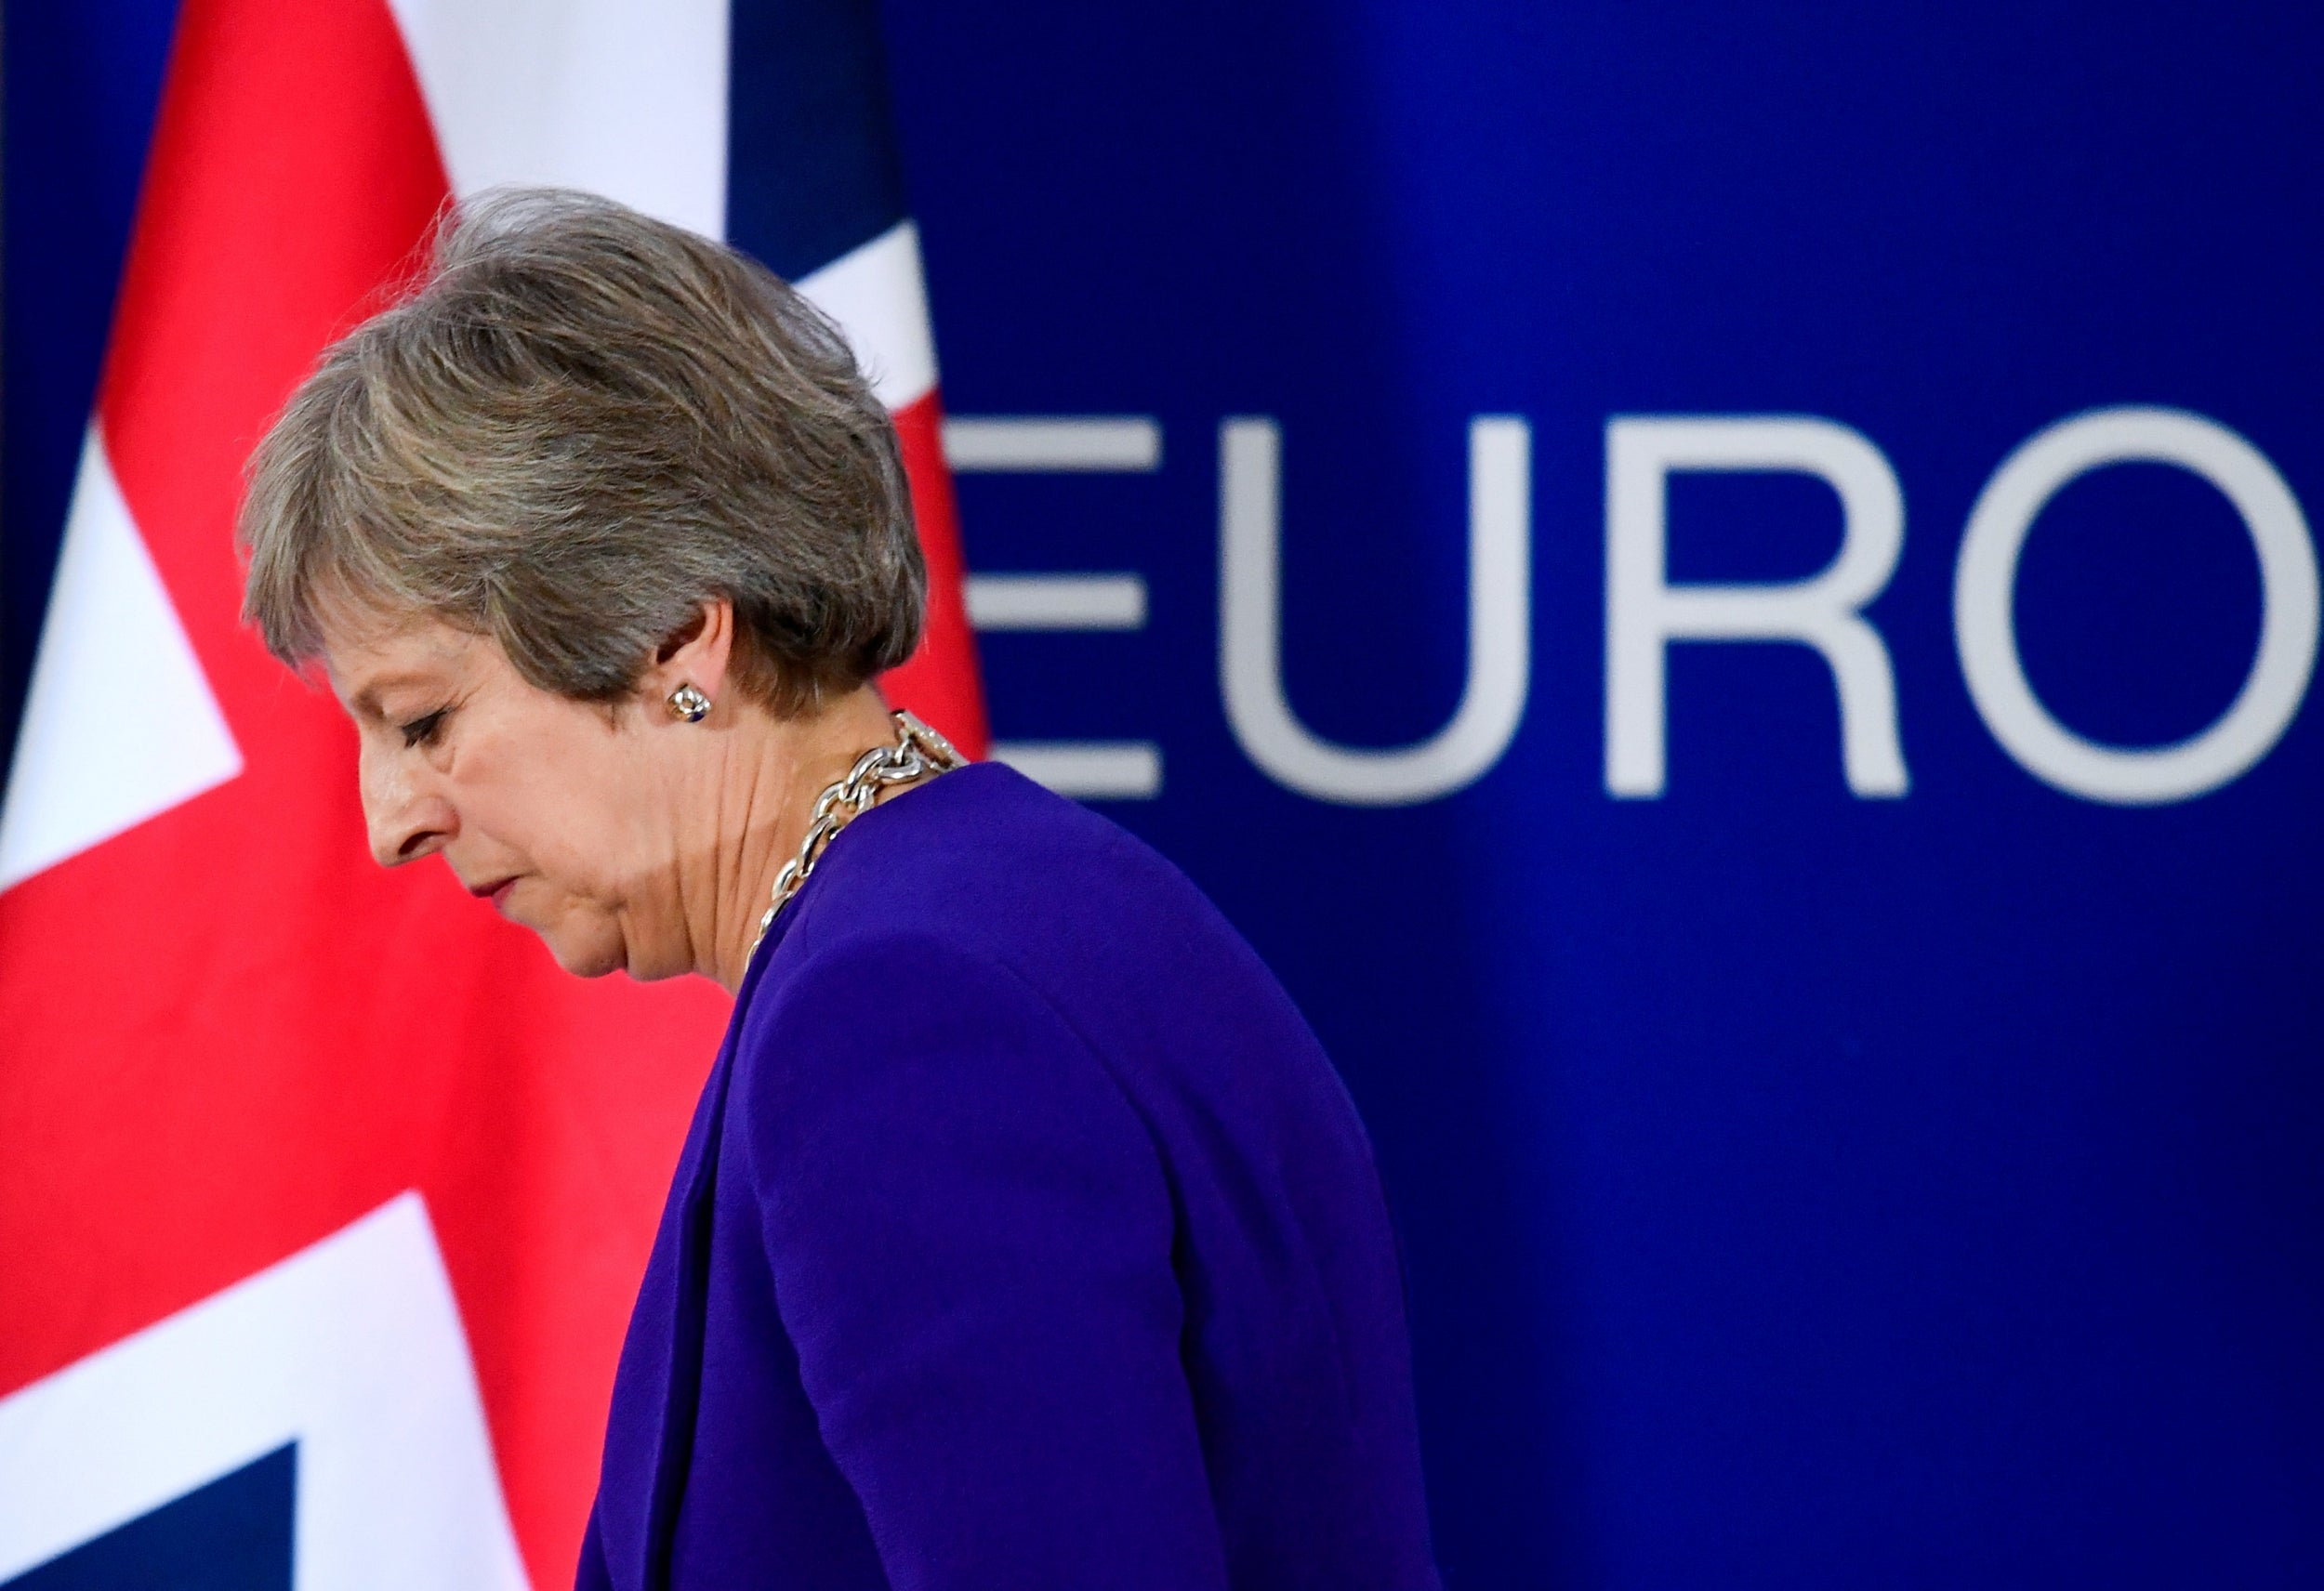 Theresa May says calling a general election to break Brexit deadlock 'would not be in the national interest'